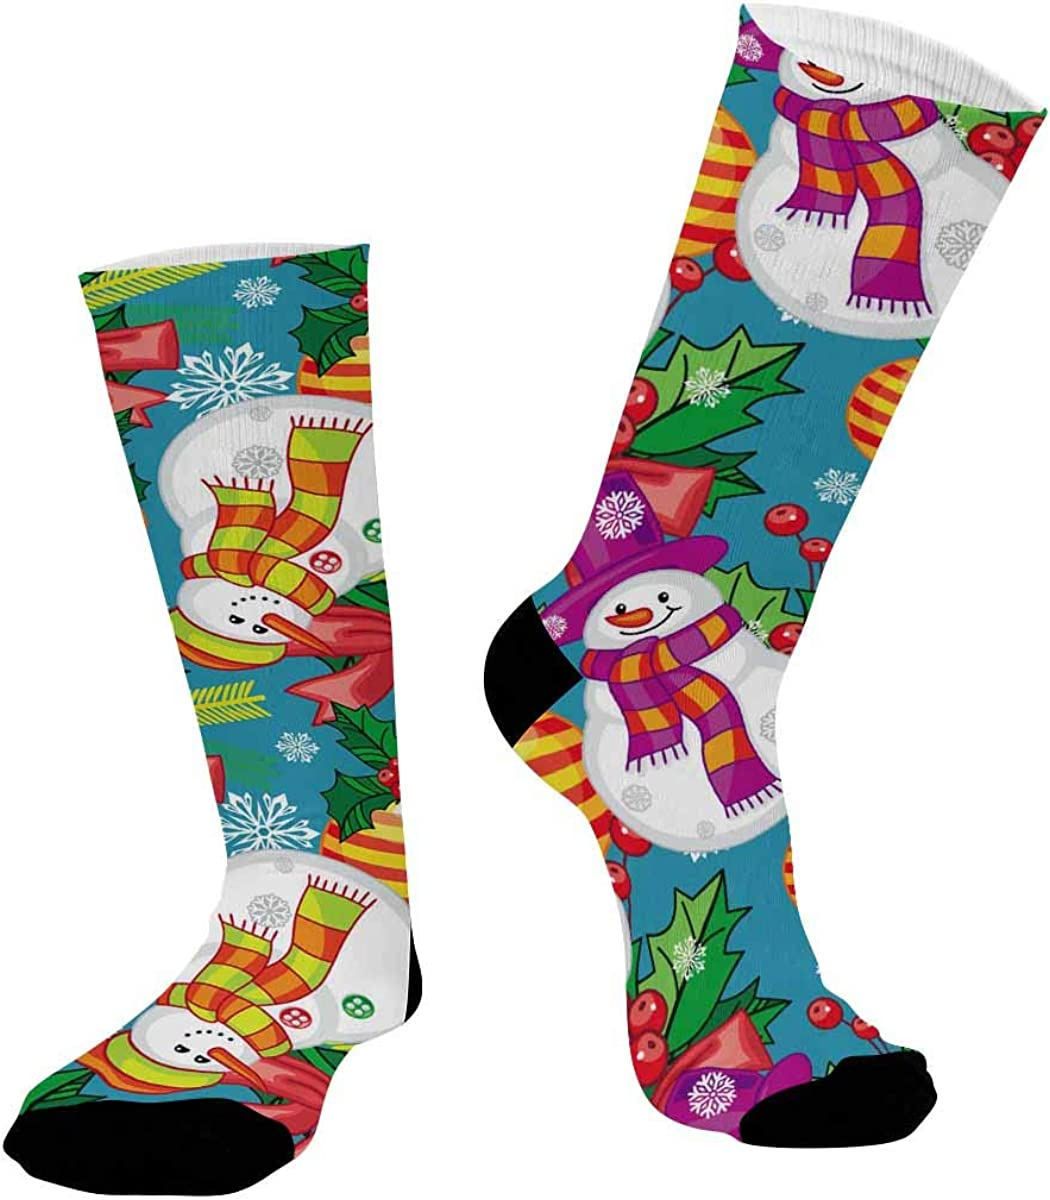 INTERESTPRINT Sublimated Crew Casual Athletic Socks Merry Christmas Snowman